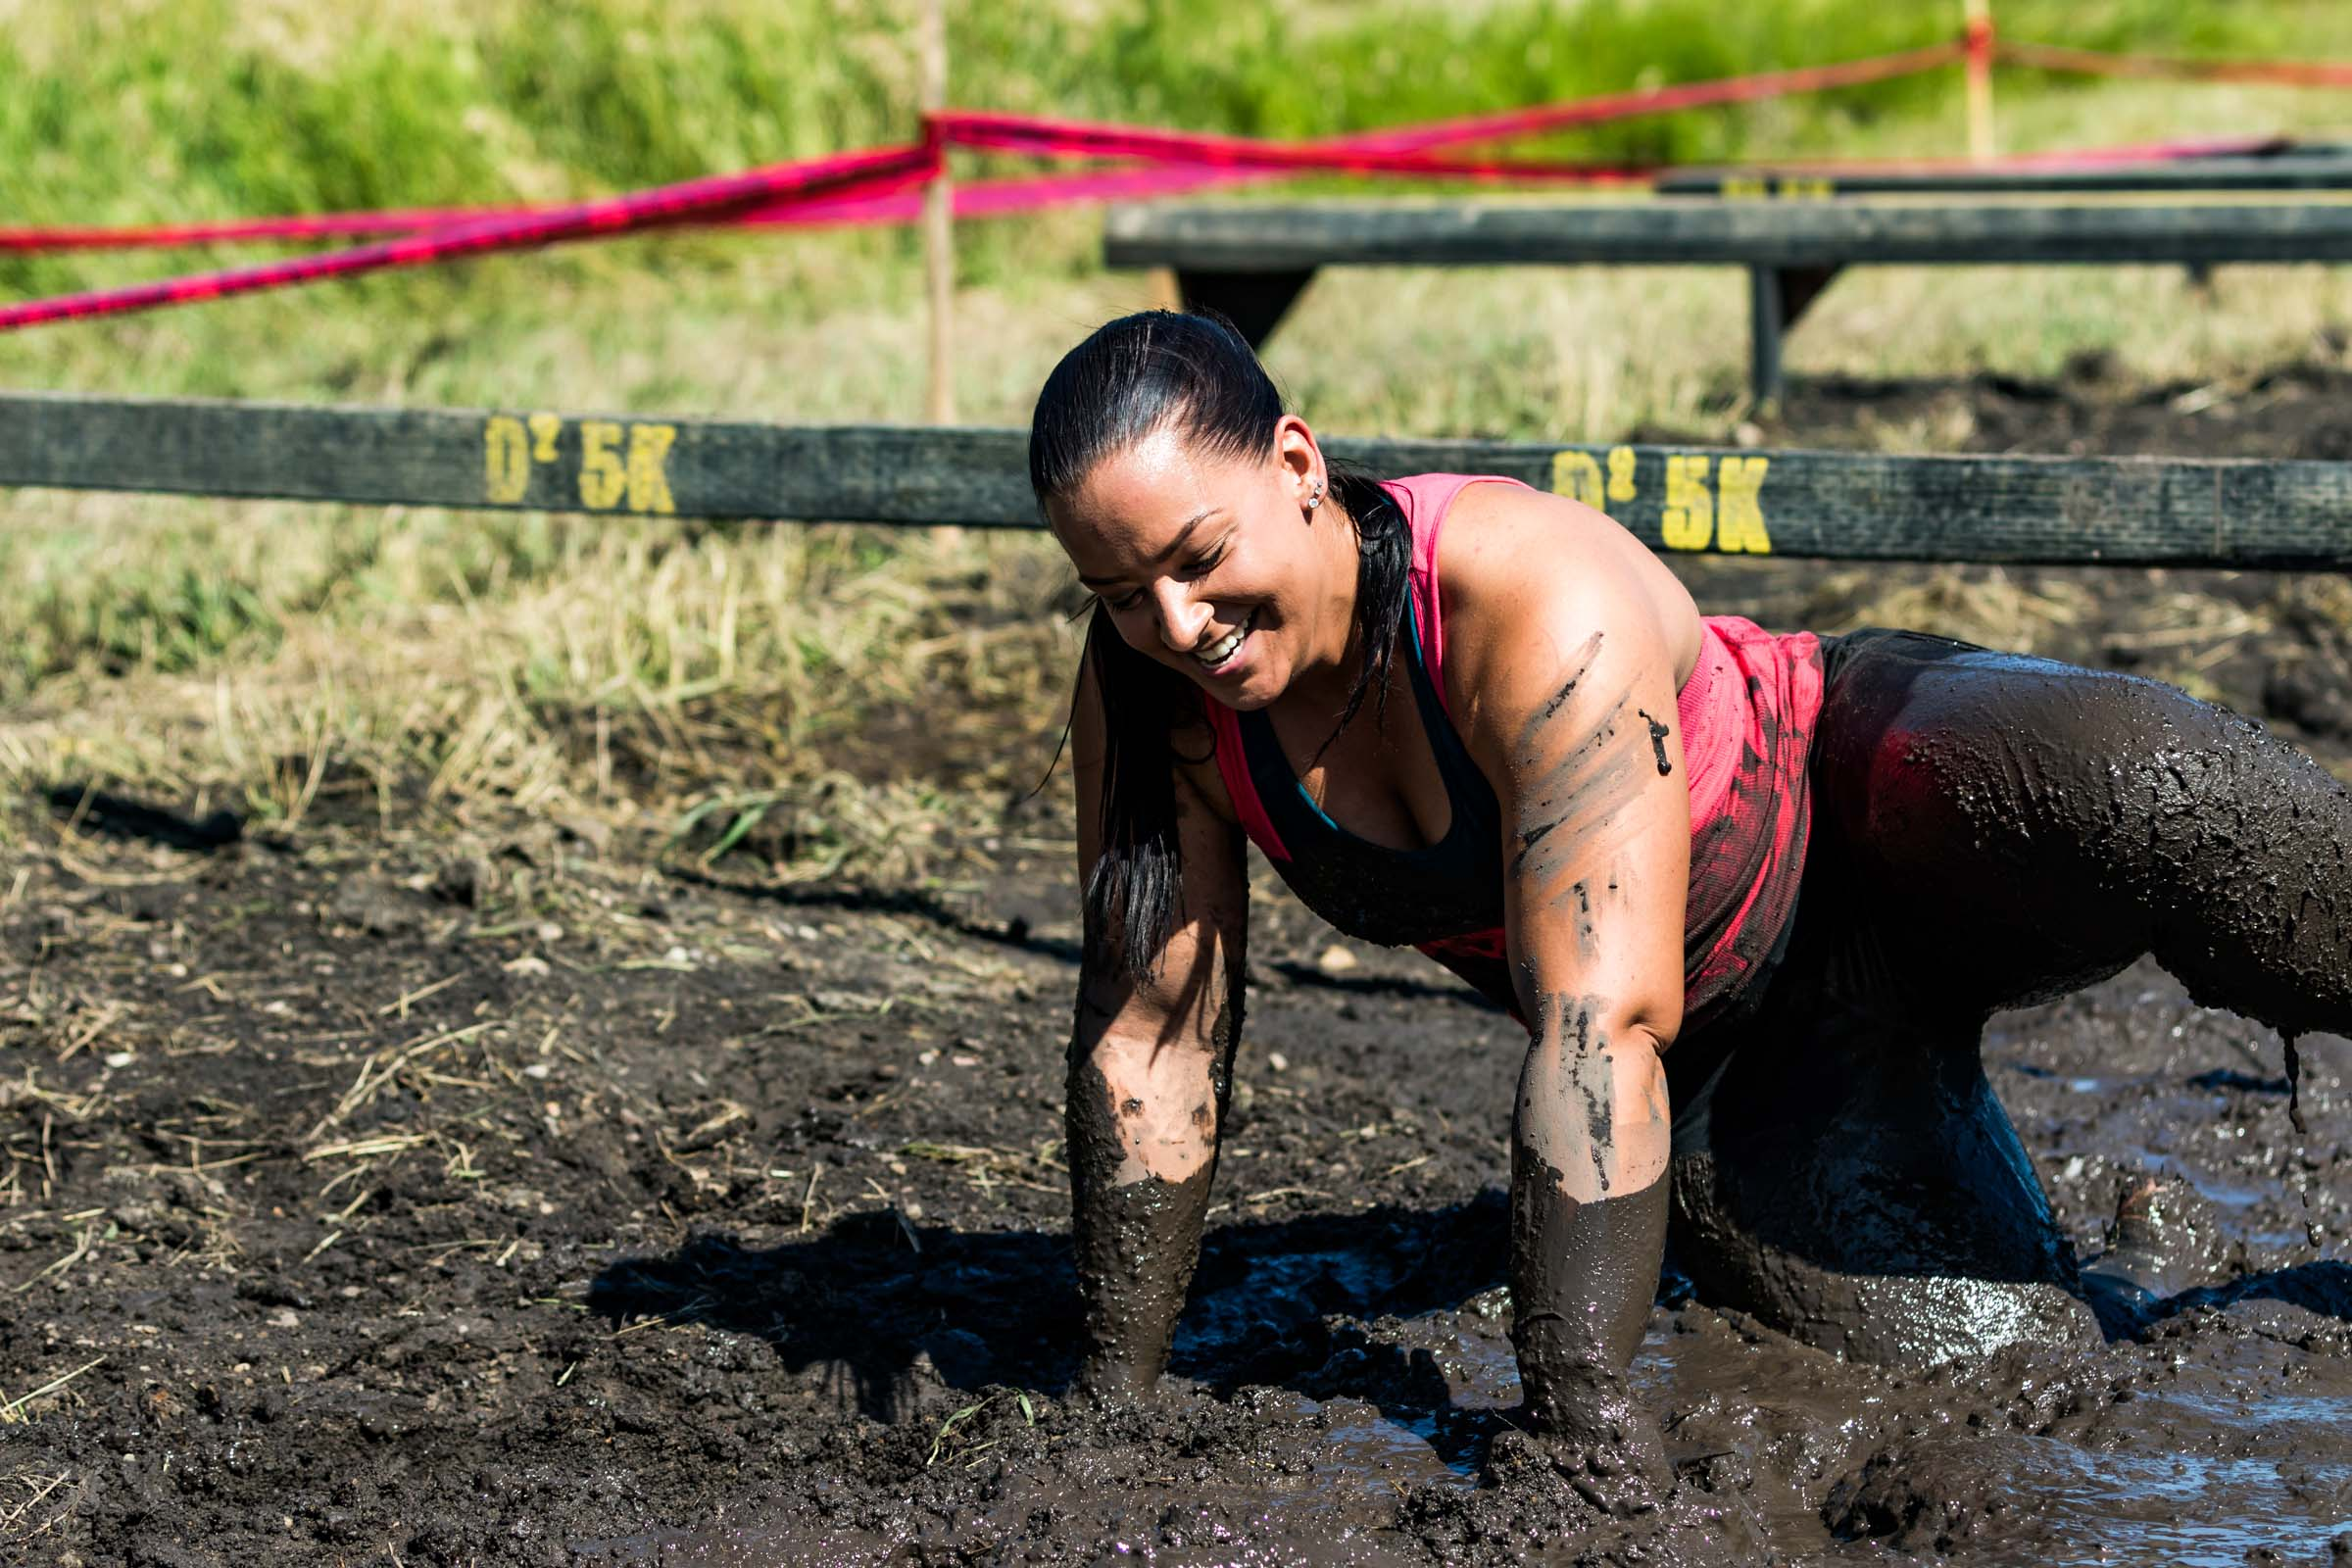 0169_downdirty5k_August 13, 2016.jpg